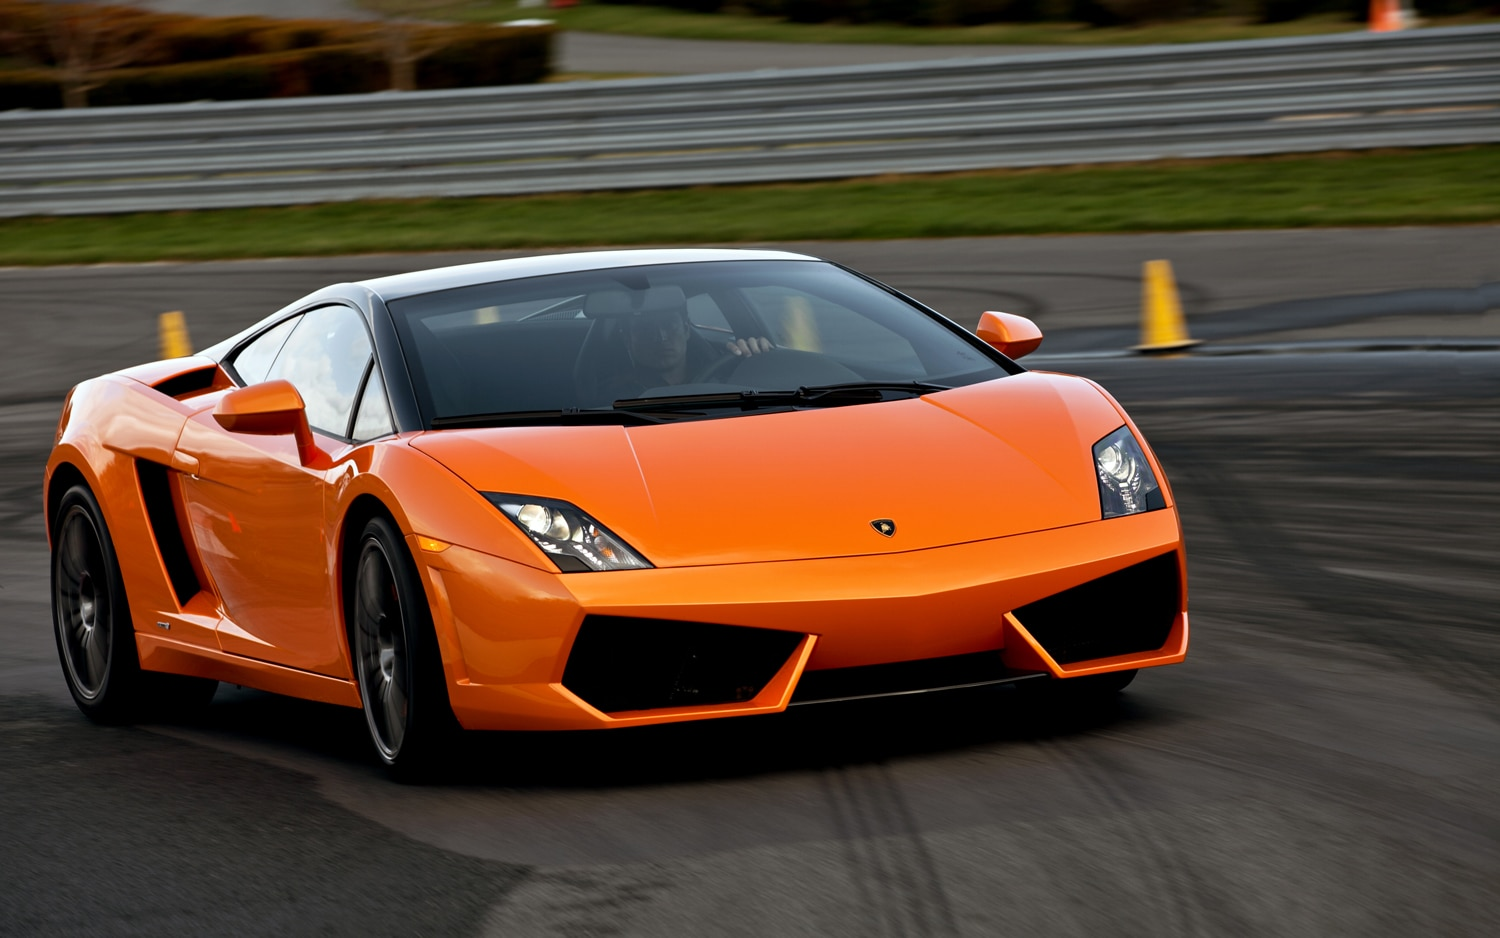 lamborghini announces pricing for 2012 aventador gallardo range. Black Bedroom Furniture Sets. Home Design Ideas